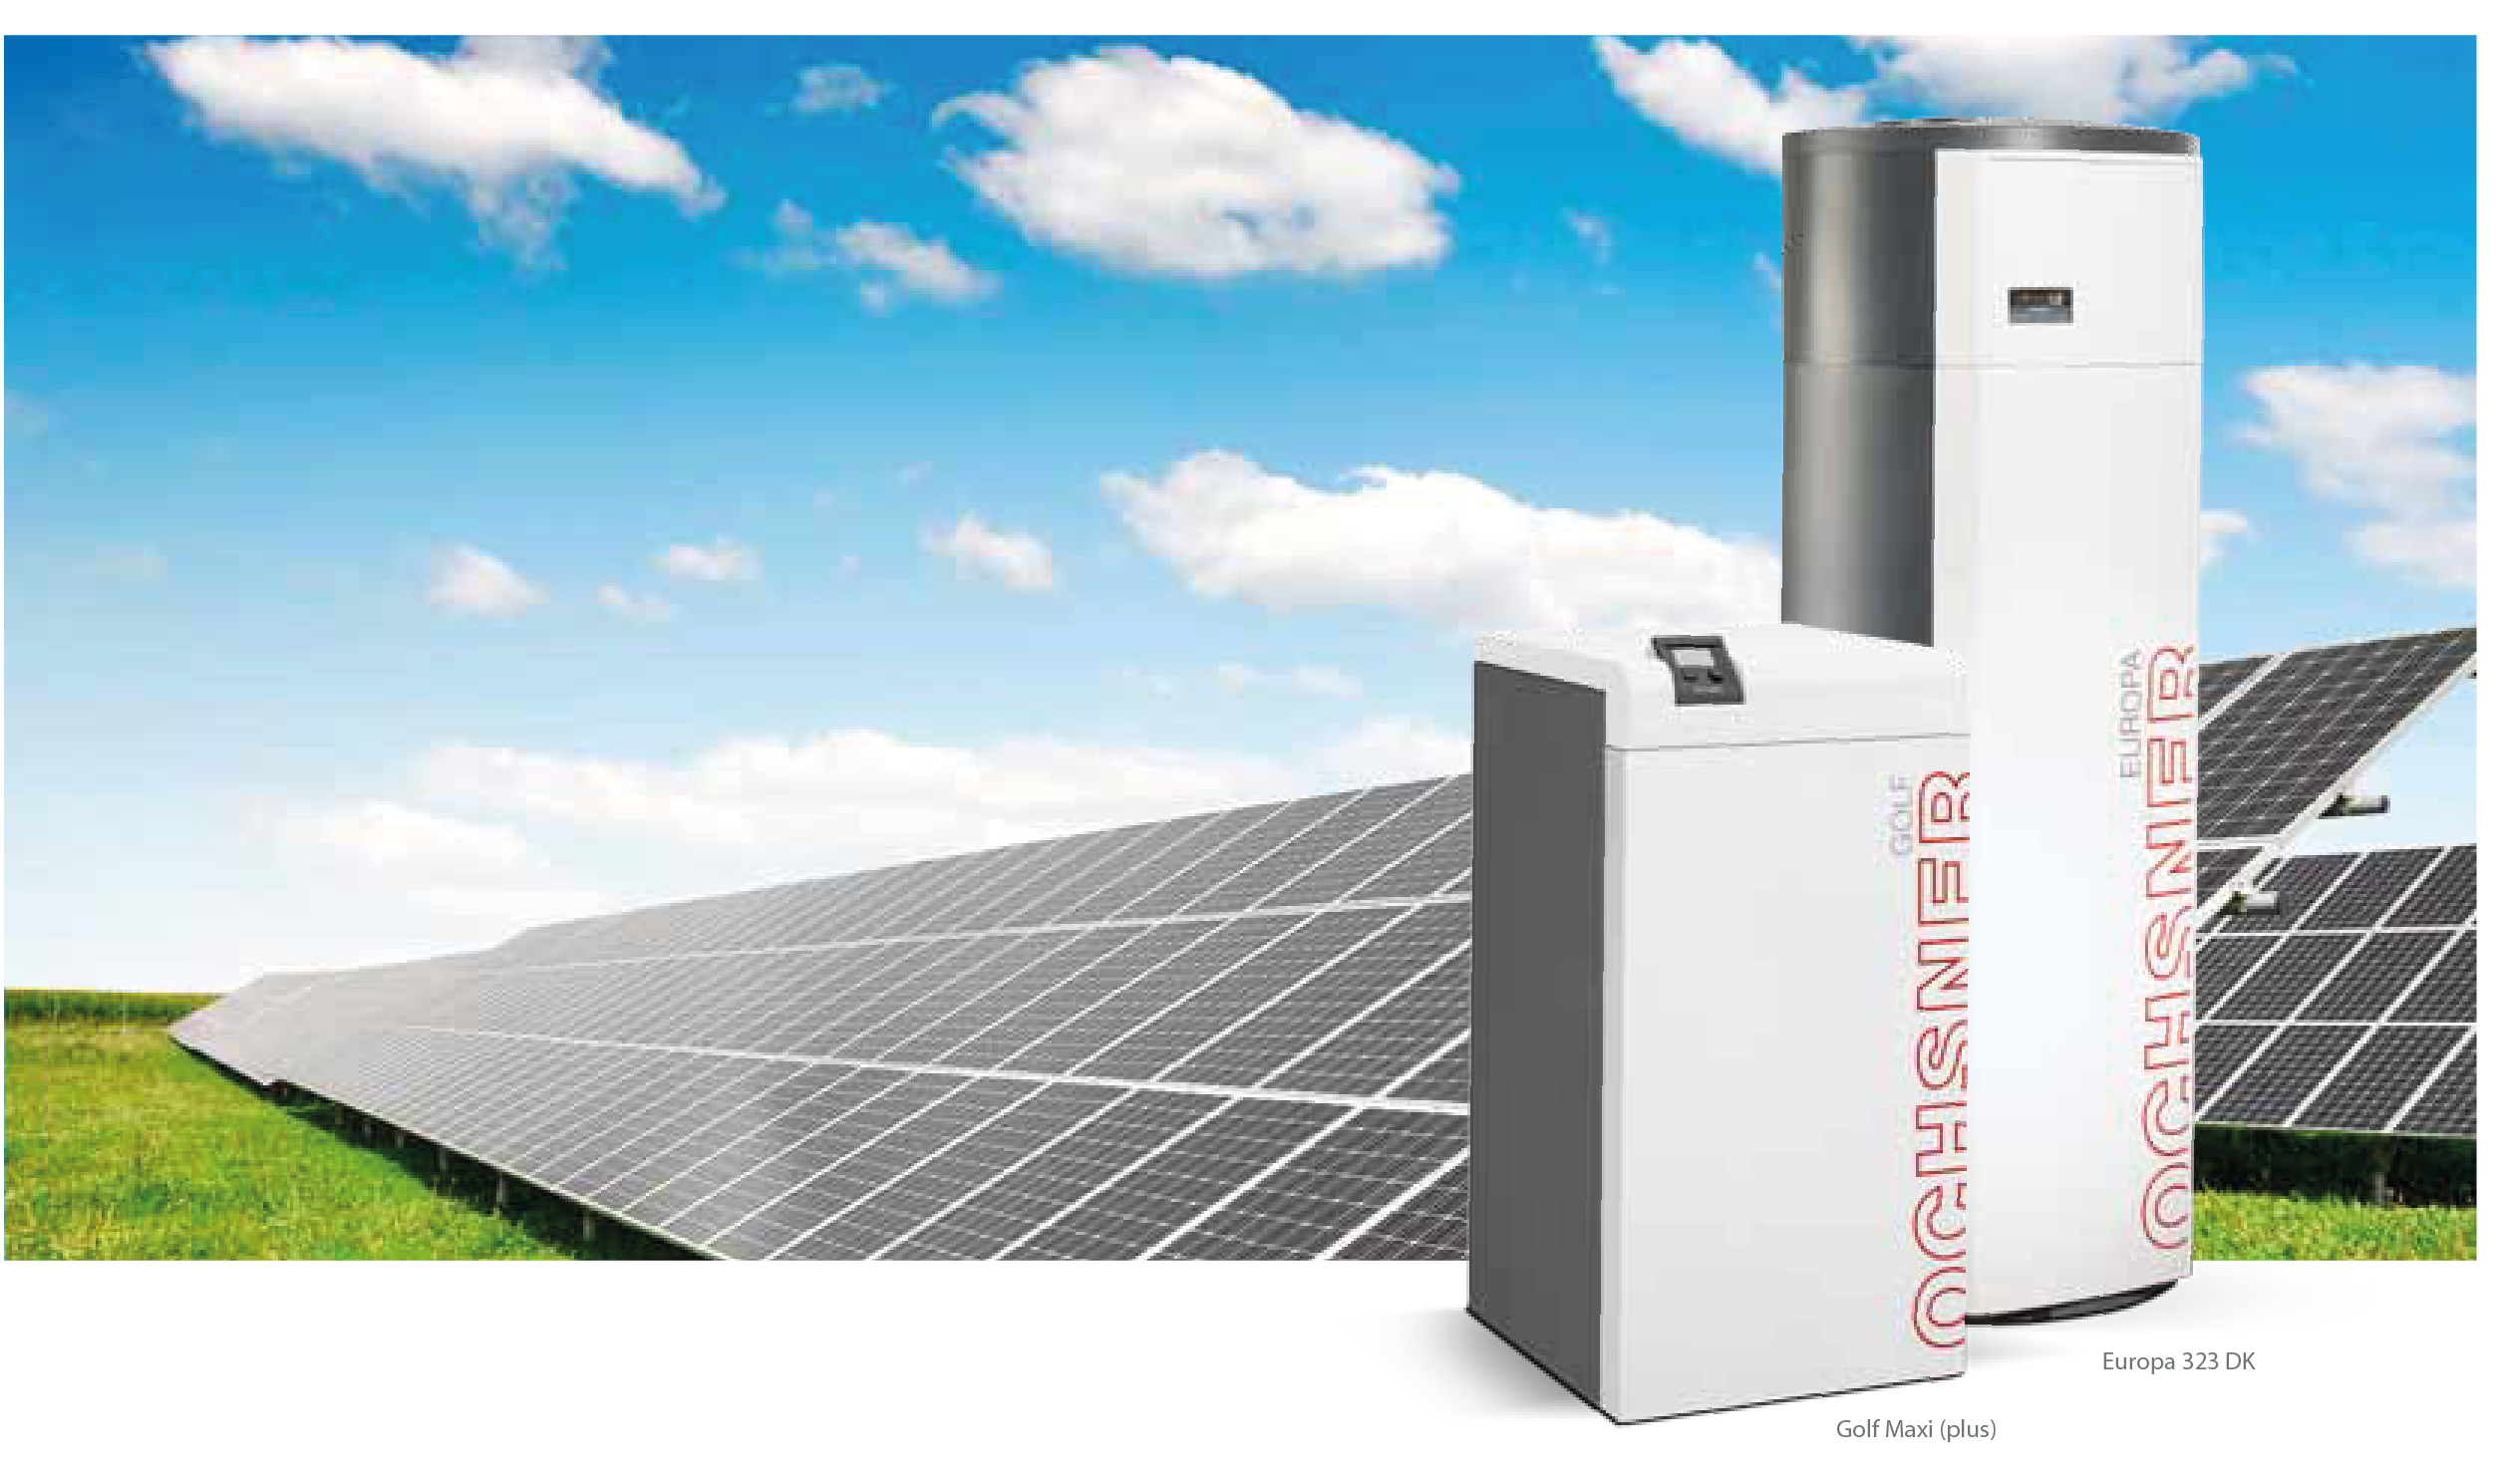 High-Tech Waermepumpen_EN_2014_W726e PV.